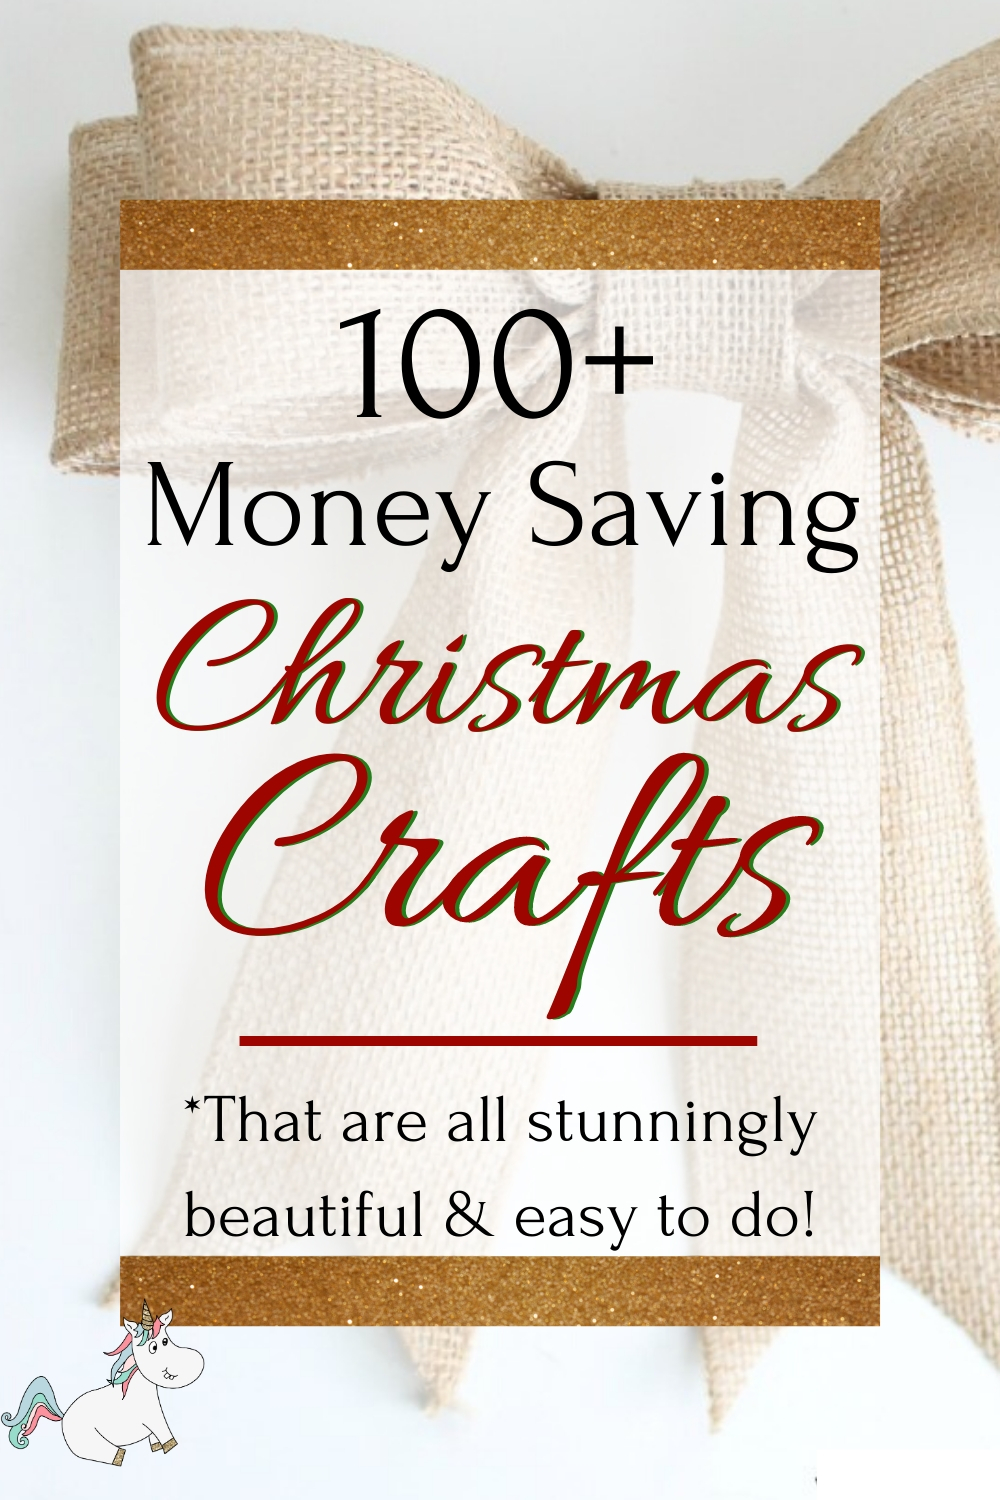 100+ Money Saving Christmas Crafts That are Stunningly Beautiful and easy to do! Whether you're looking for the perfect gift wrapping ideas or the best diy Christmas ornaments for your tree, this post has got you covered! You'll find Christmas wreaths, Tree decorations, handmade gift ideas and so much more. Click here to get all the inspiration